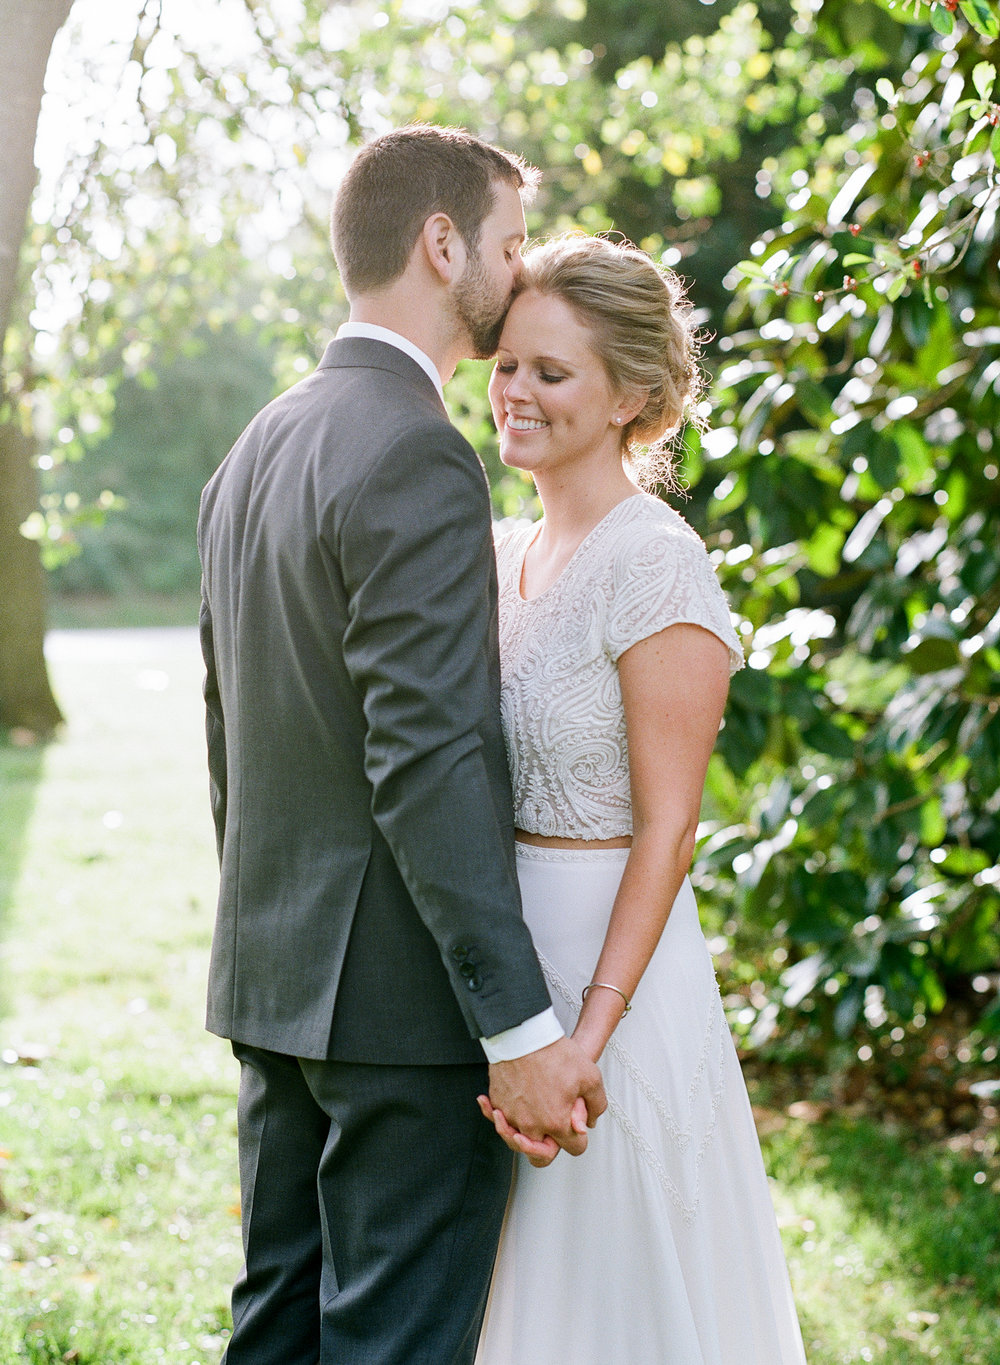 Southern Wedding at the Oaks by Carrie Joy Photography-1021.jpg